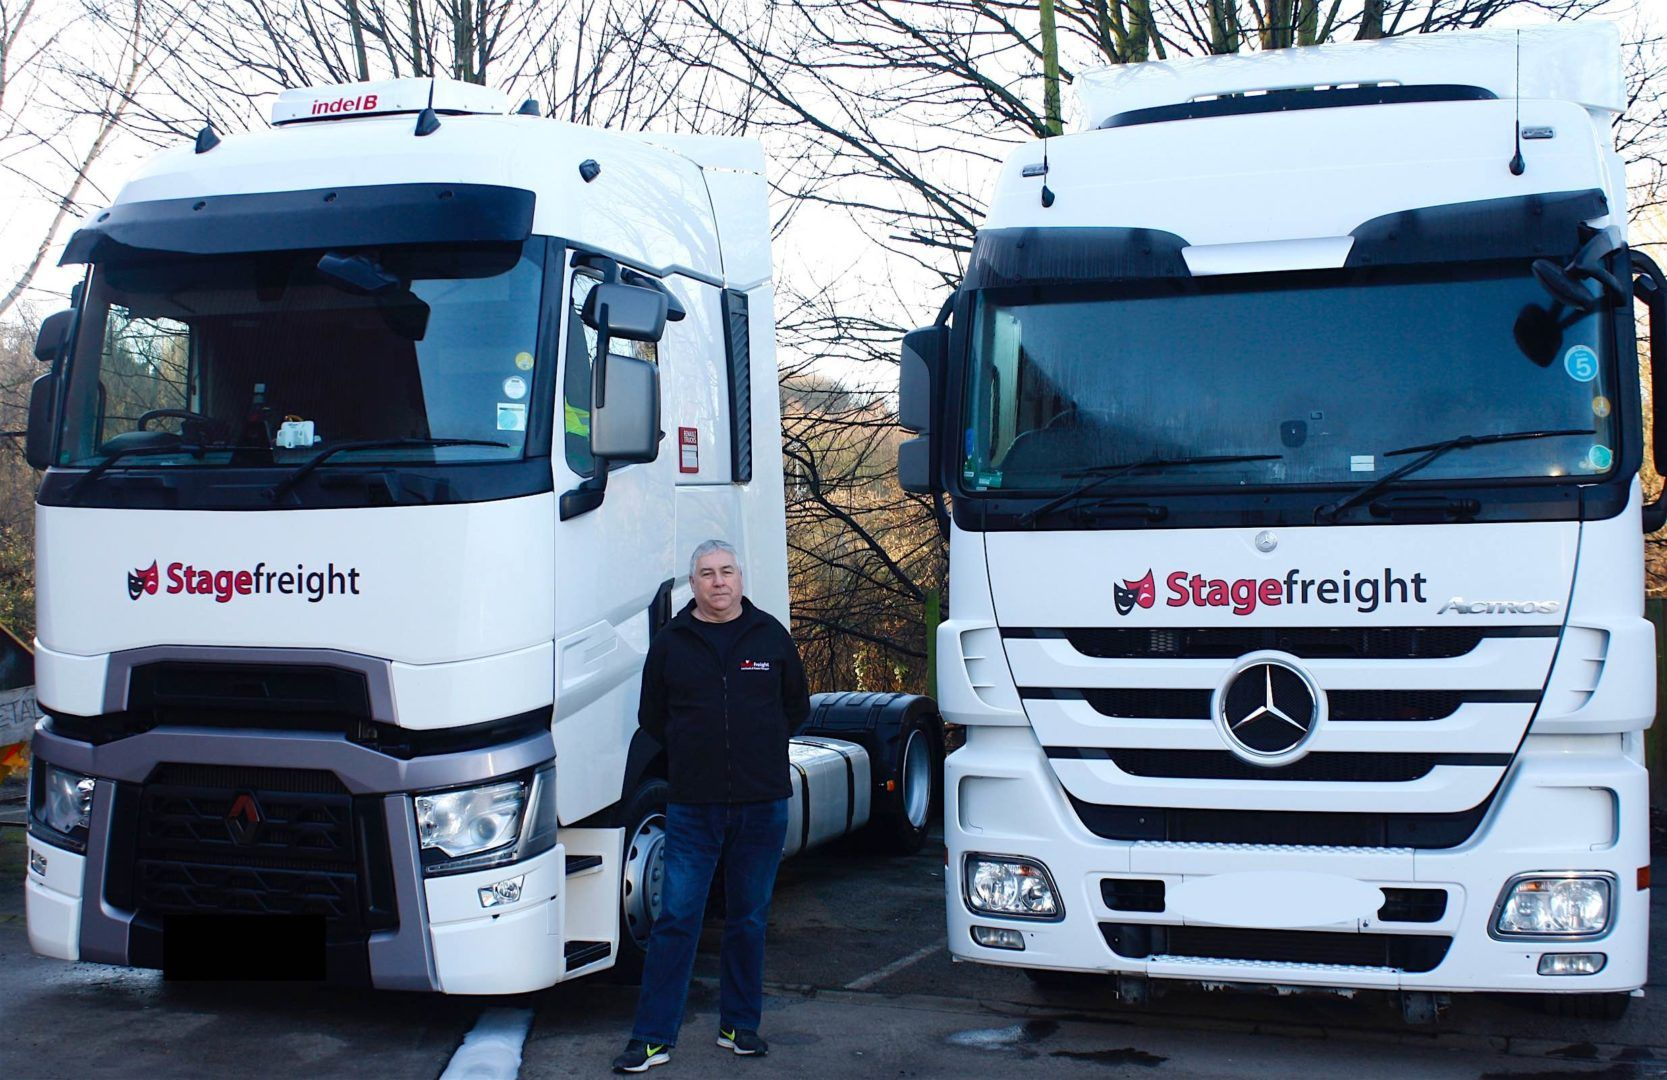 Ross Hemsworth at Stagefreight Event Transport